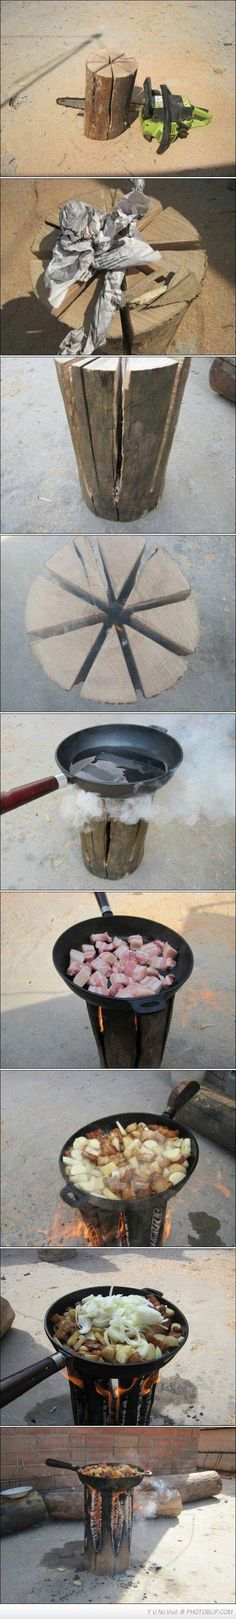 Cooking like a champ... All you need is a log, a chainsaw, and a pan... Then sit back and look awesome.